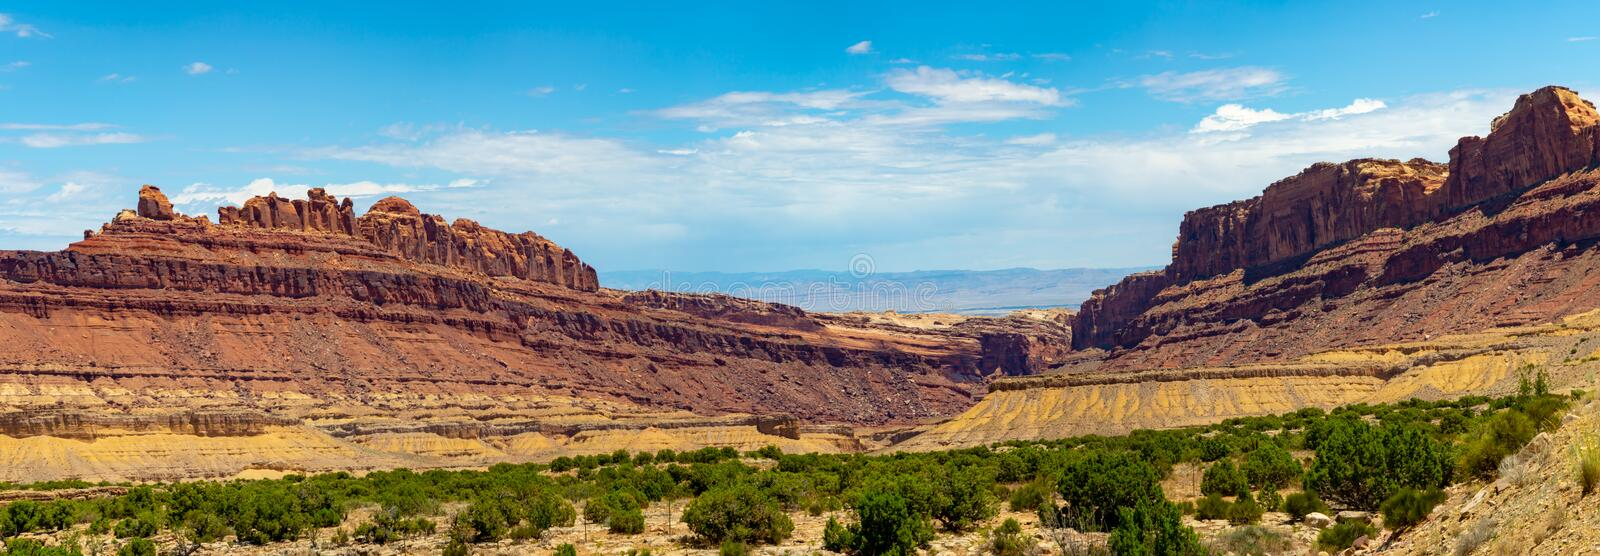 Mesas and Desert Canyons. A panorama rugged desert landscape in Utah shows different colored rocks, sands, and scrub plants stock photography